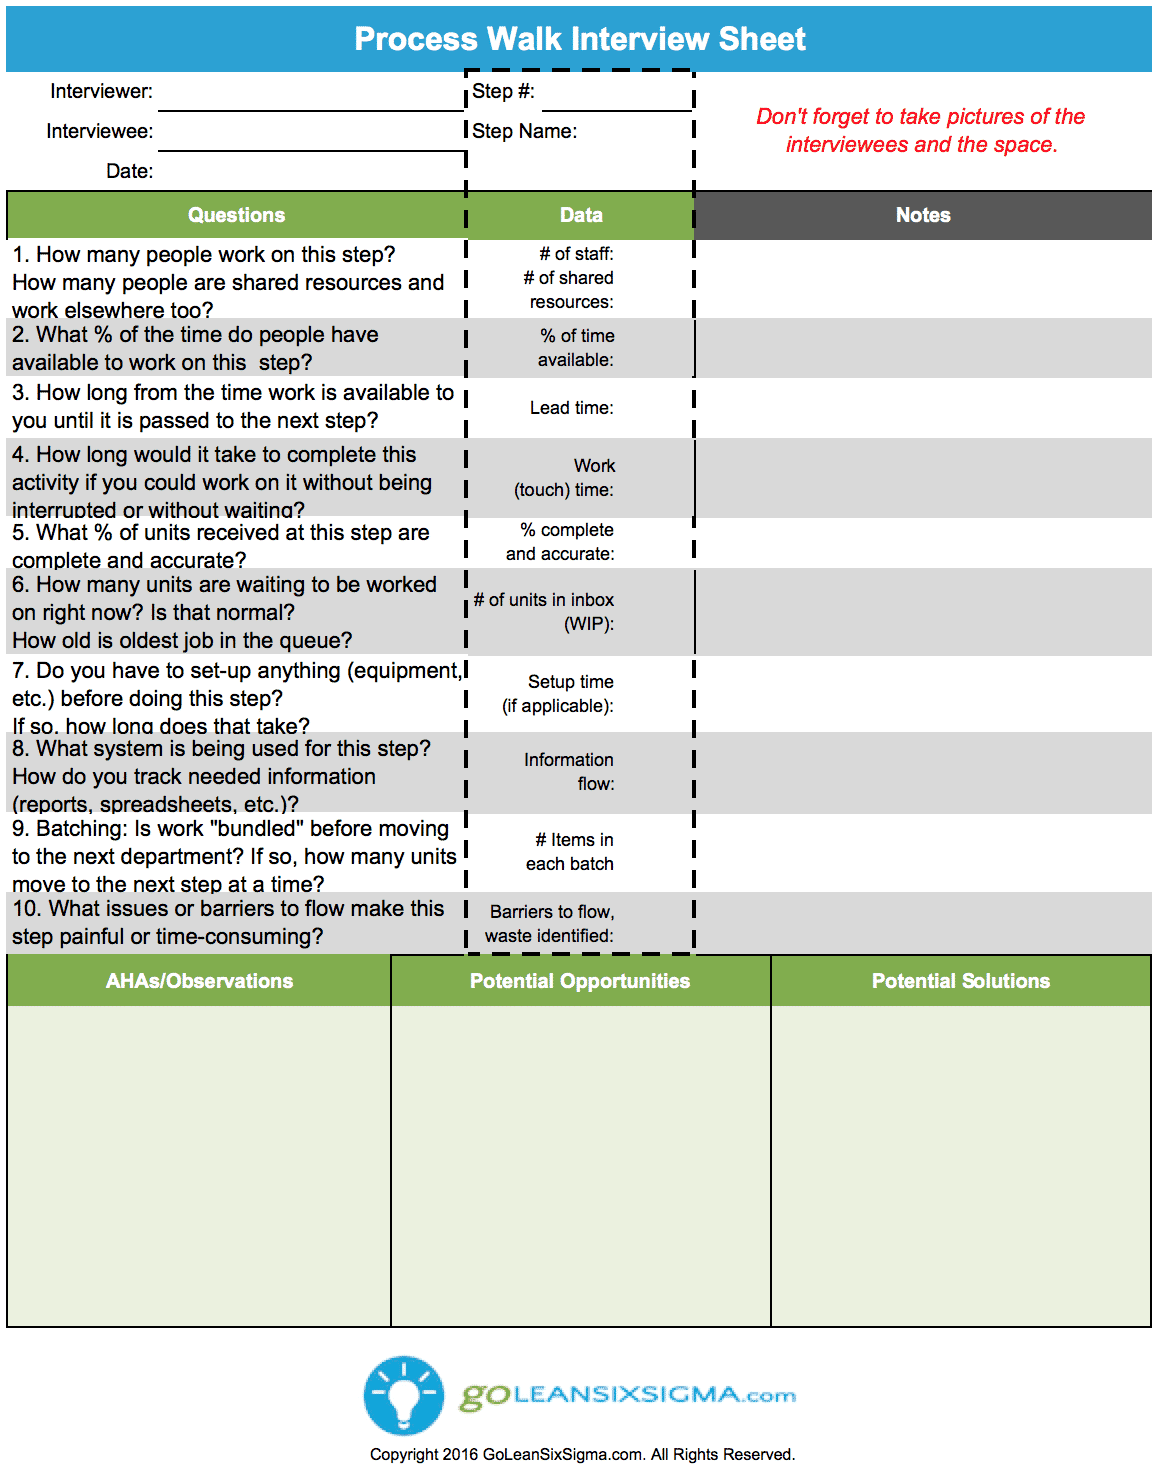 Process Walk Interview Sheet V3.0 GoLeanSixSigma.com